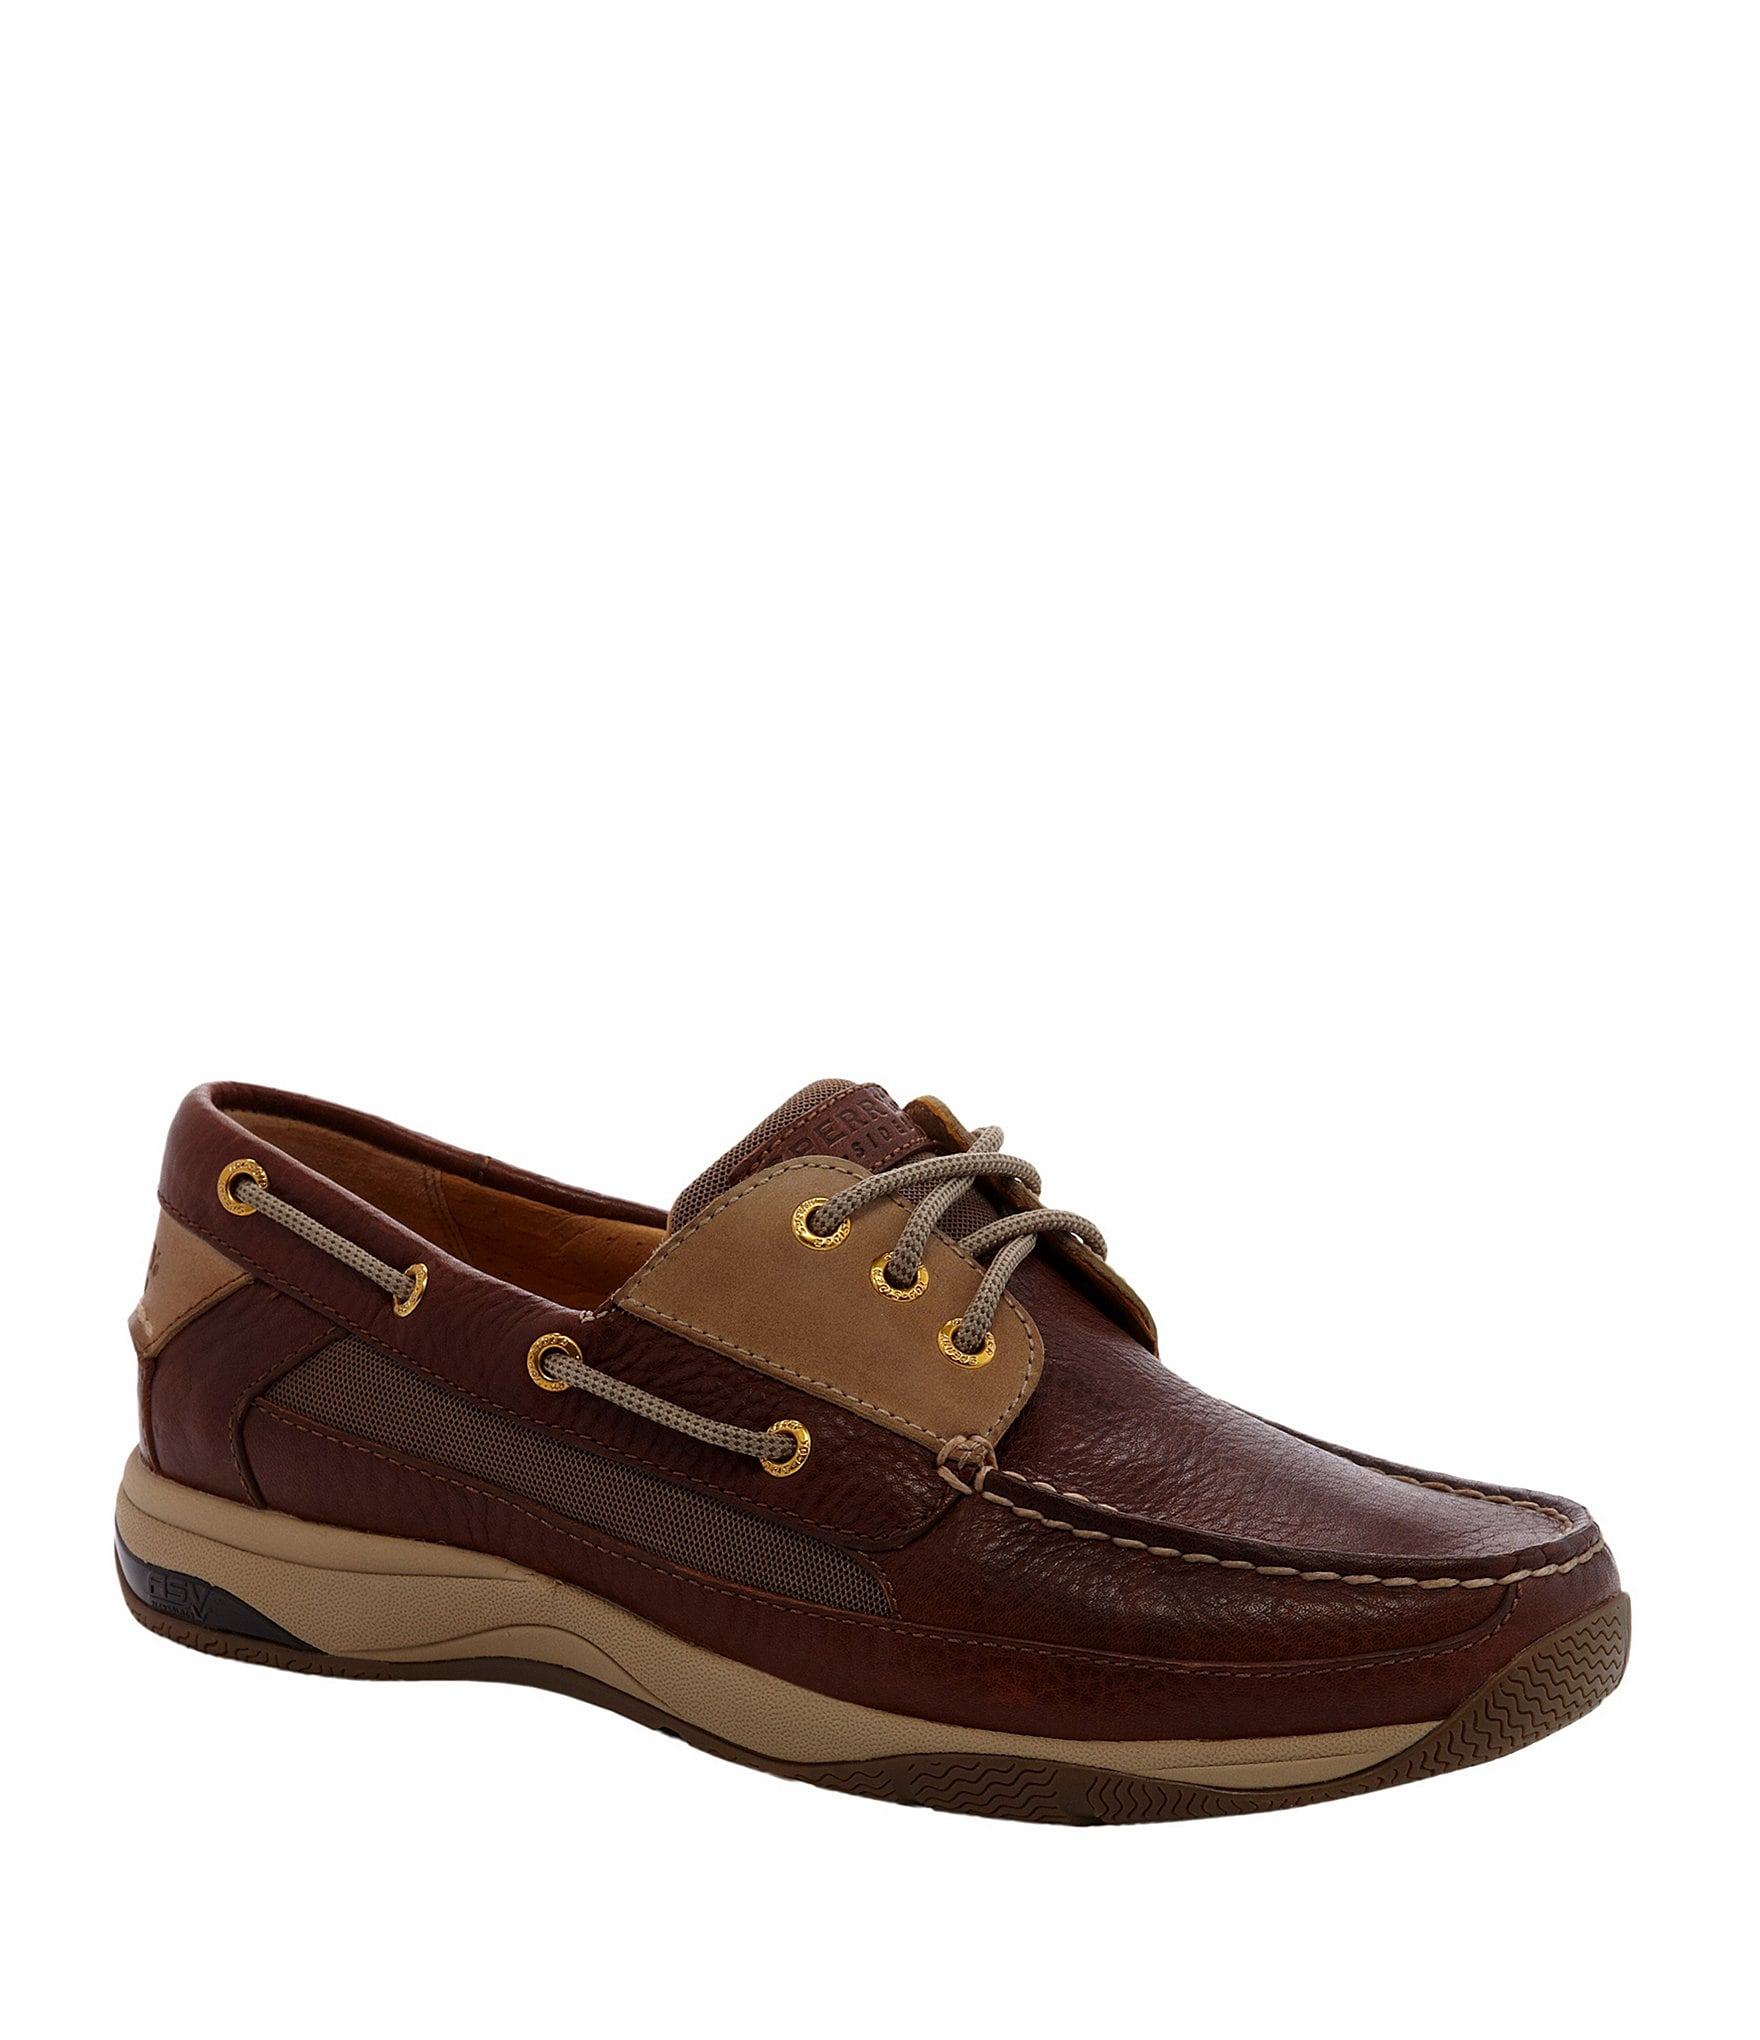 sperry catholic girl personals Adult-personals htmlone boy one girl sperry-striper.